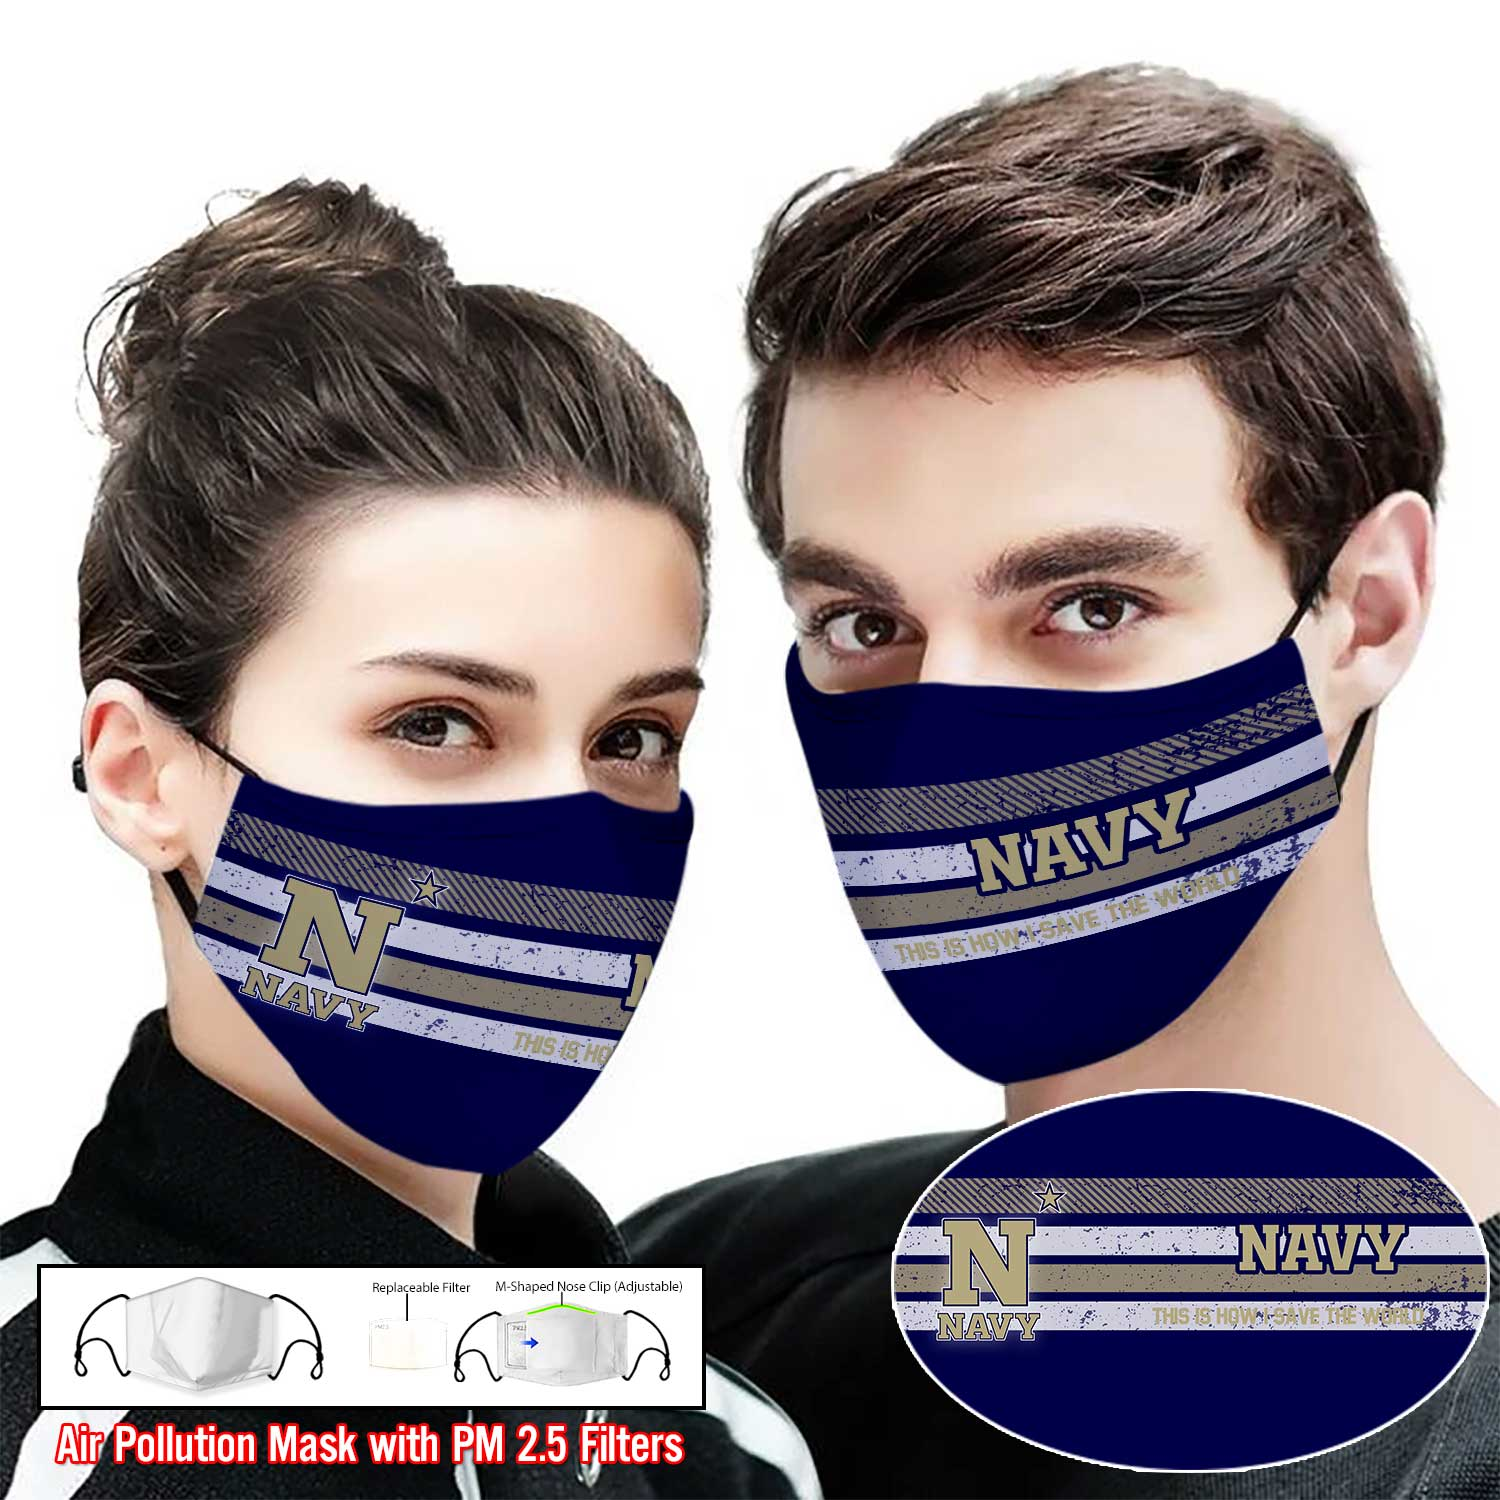 Navy midshipmen this is how i save the world full printing face mask 1